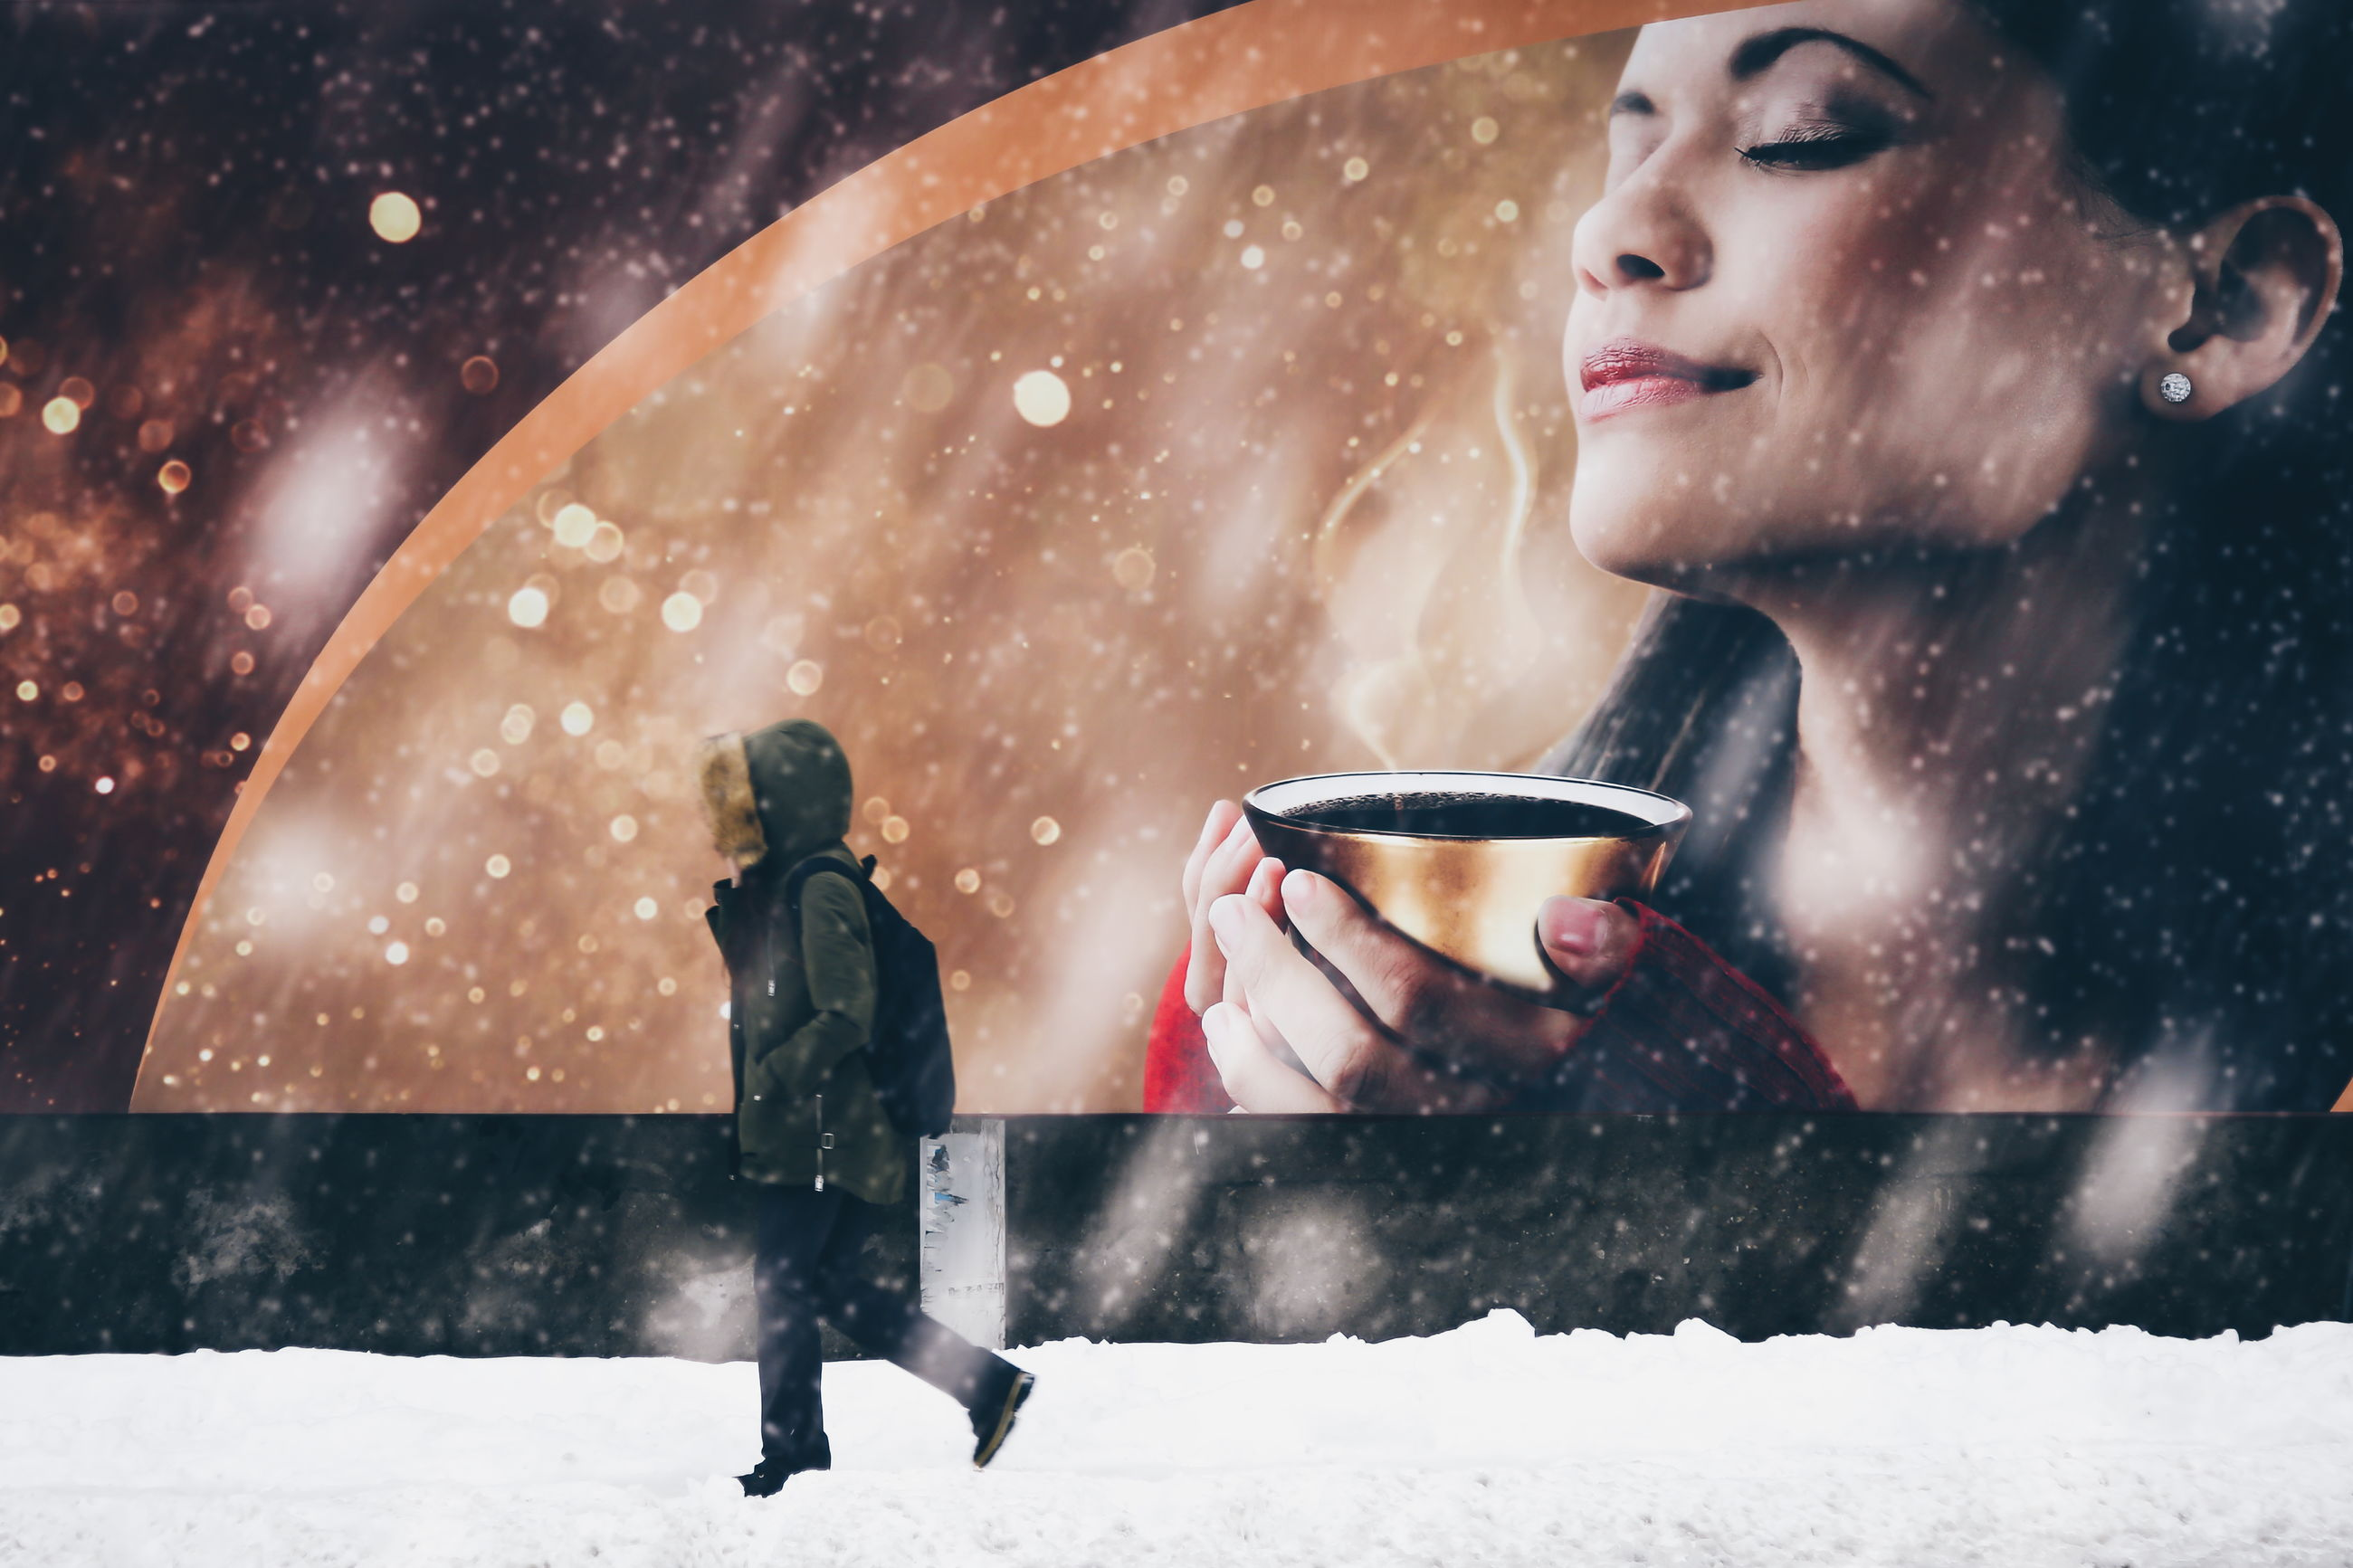 winter, snow, cold temperature, snowing, warm clothing, togetherness, beauty, snowflake, people, outdoors, young adult, friendship, adult, human body part, human hand